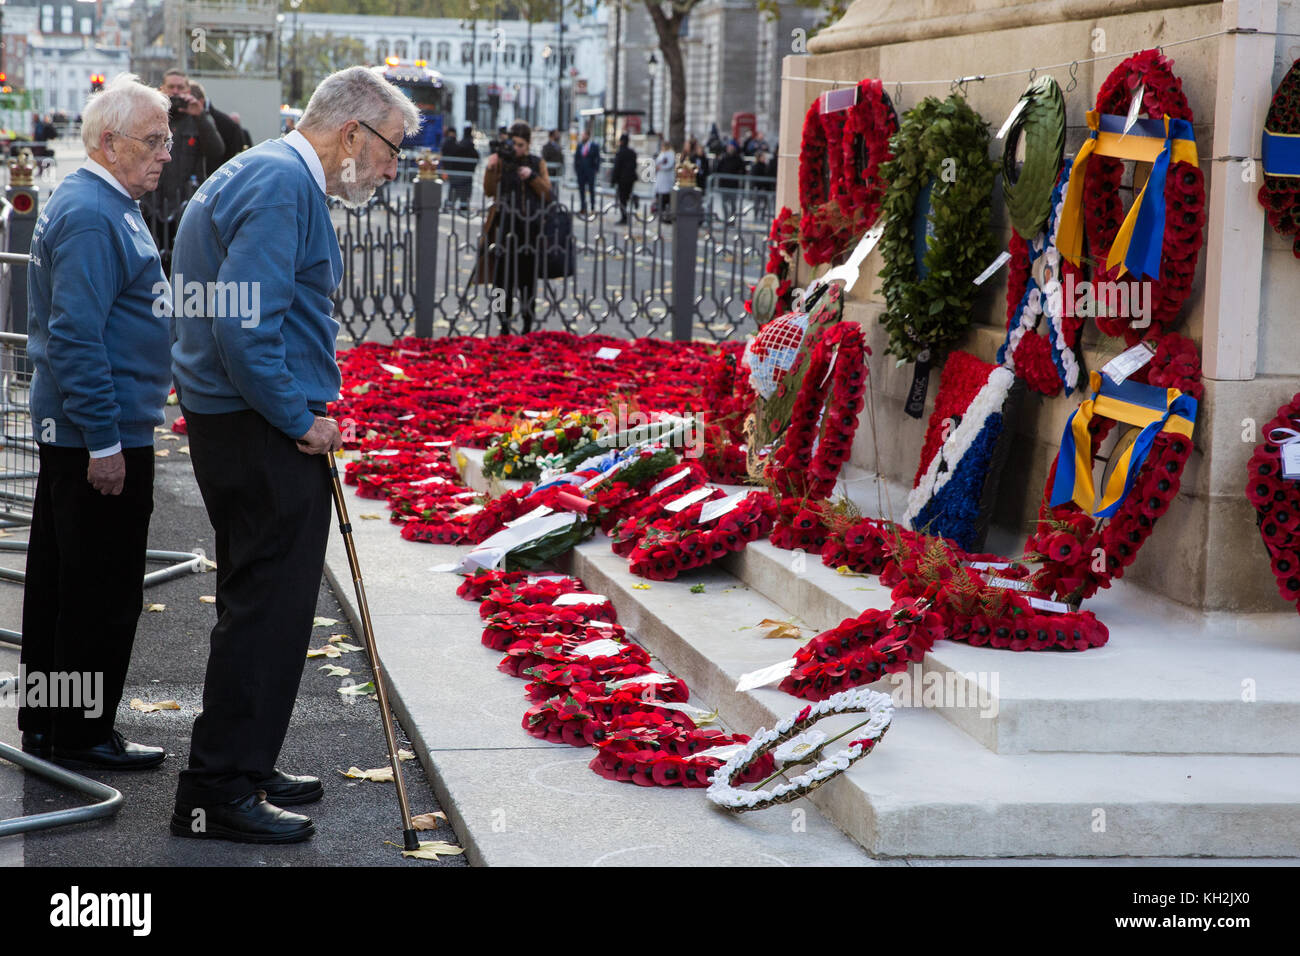 London, UK. 12th November, 2017. Ex-services personnel from Veterans For Peace UK (VFP UK) place a wreath at the - Stock Image